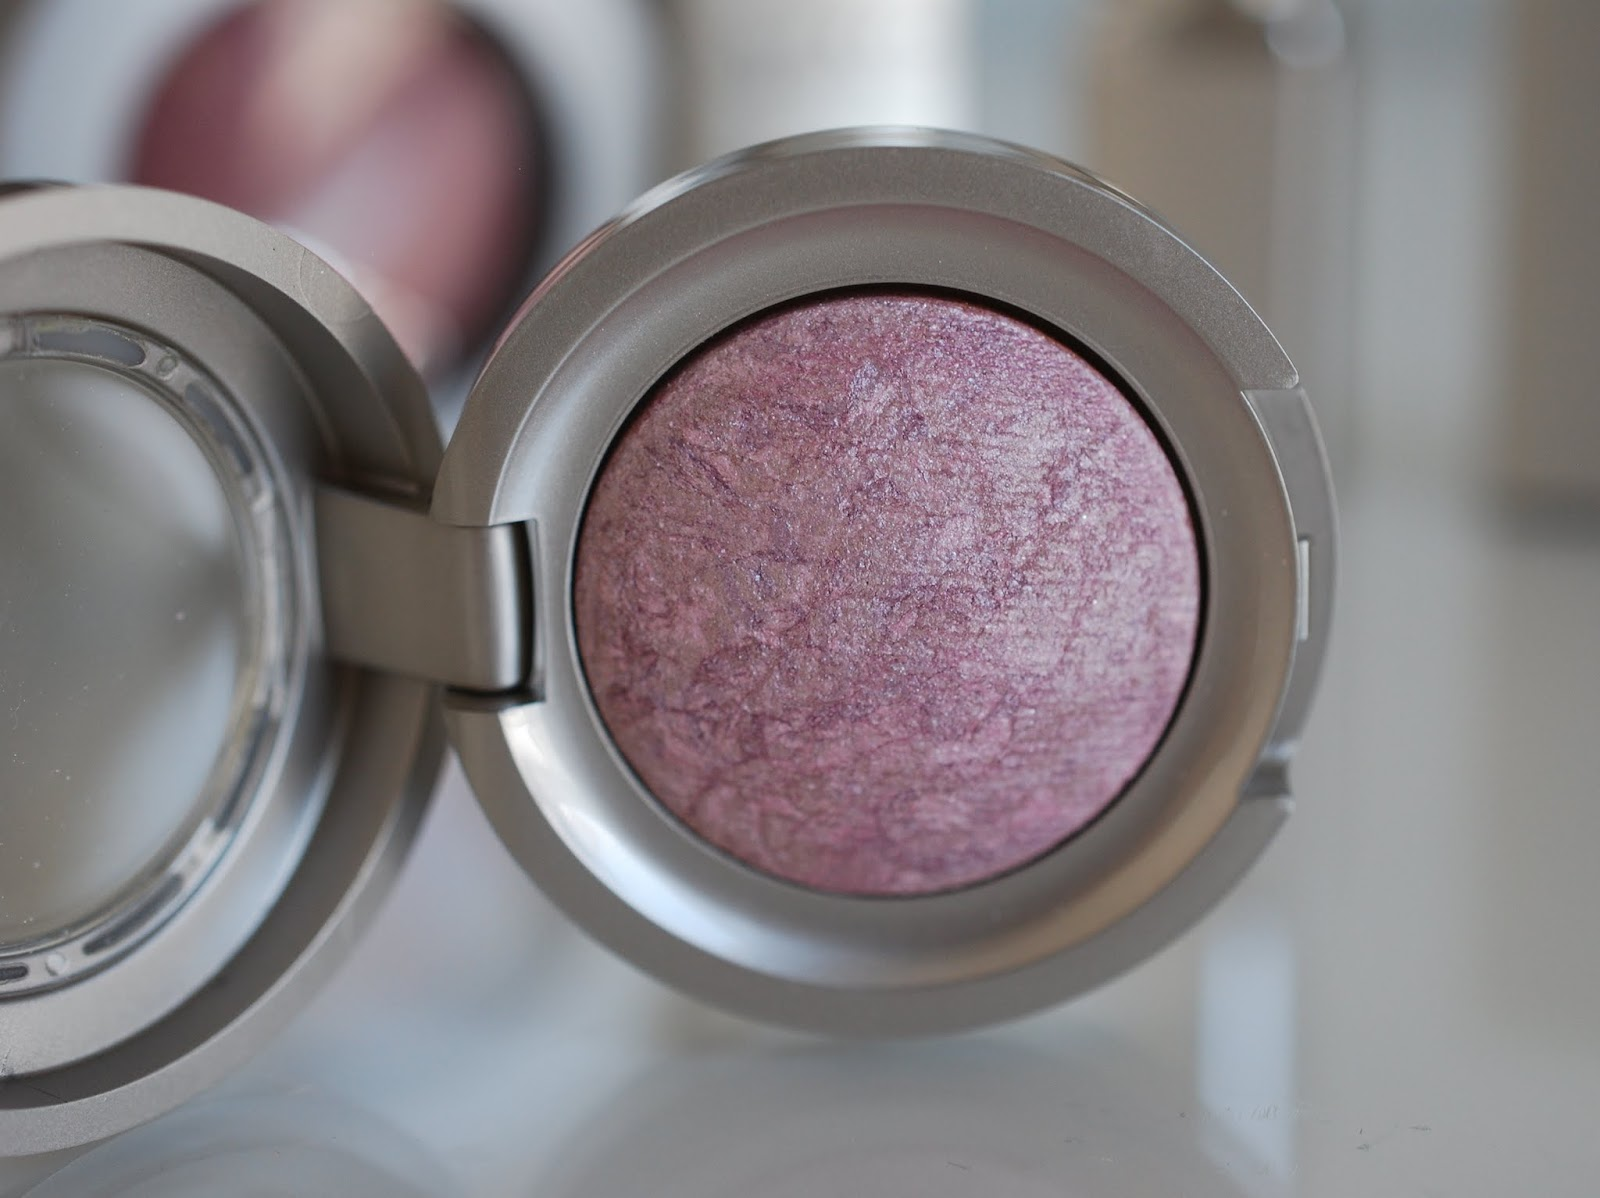 Artdeco Mineral Baked Eyeshadow 197 rose quartz review